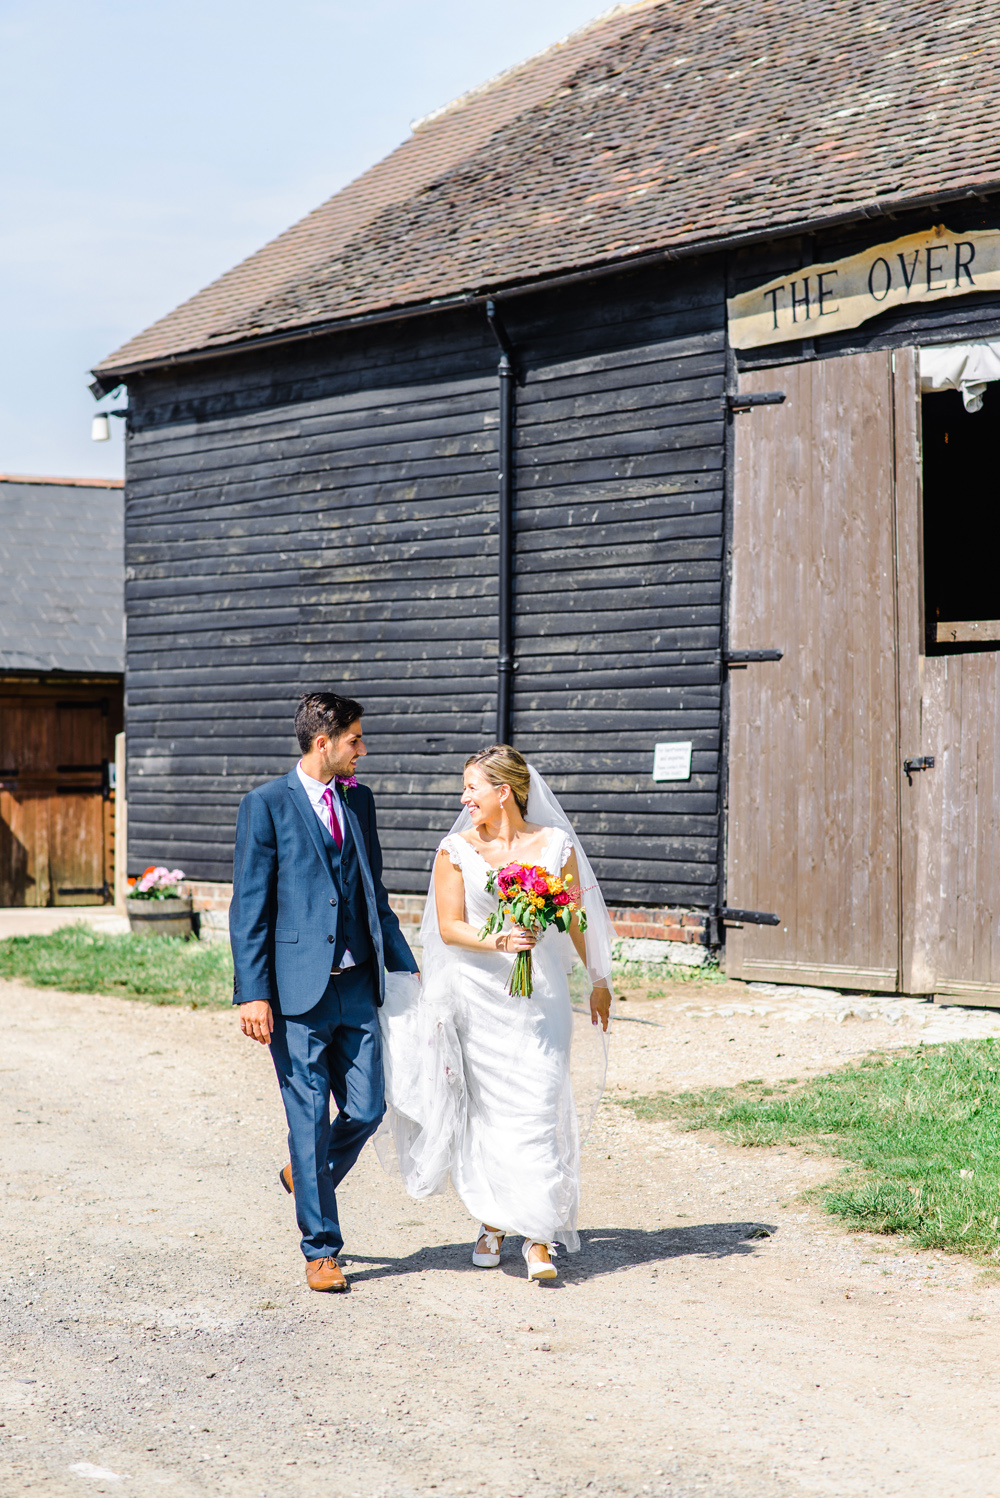 Over Barn wedding